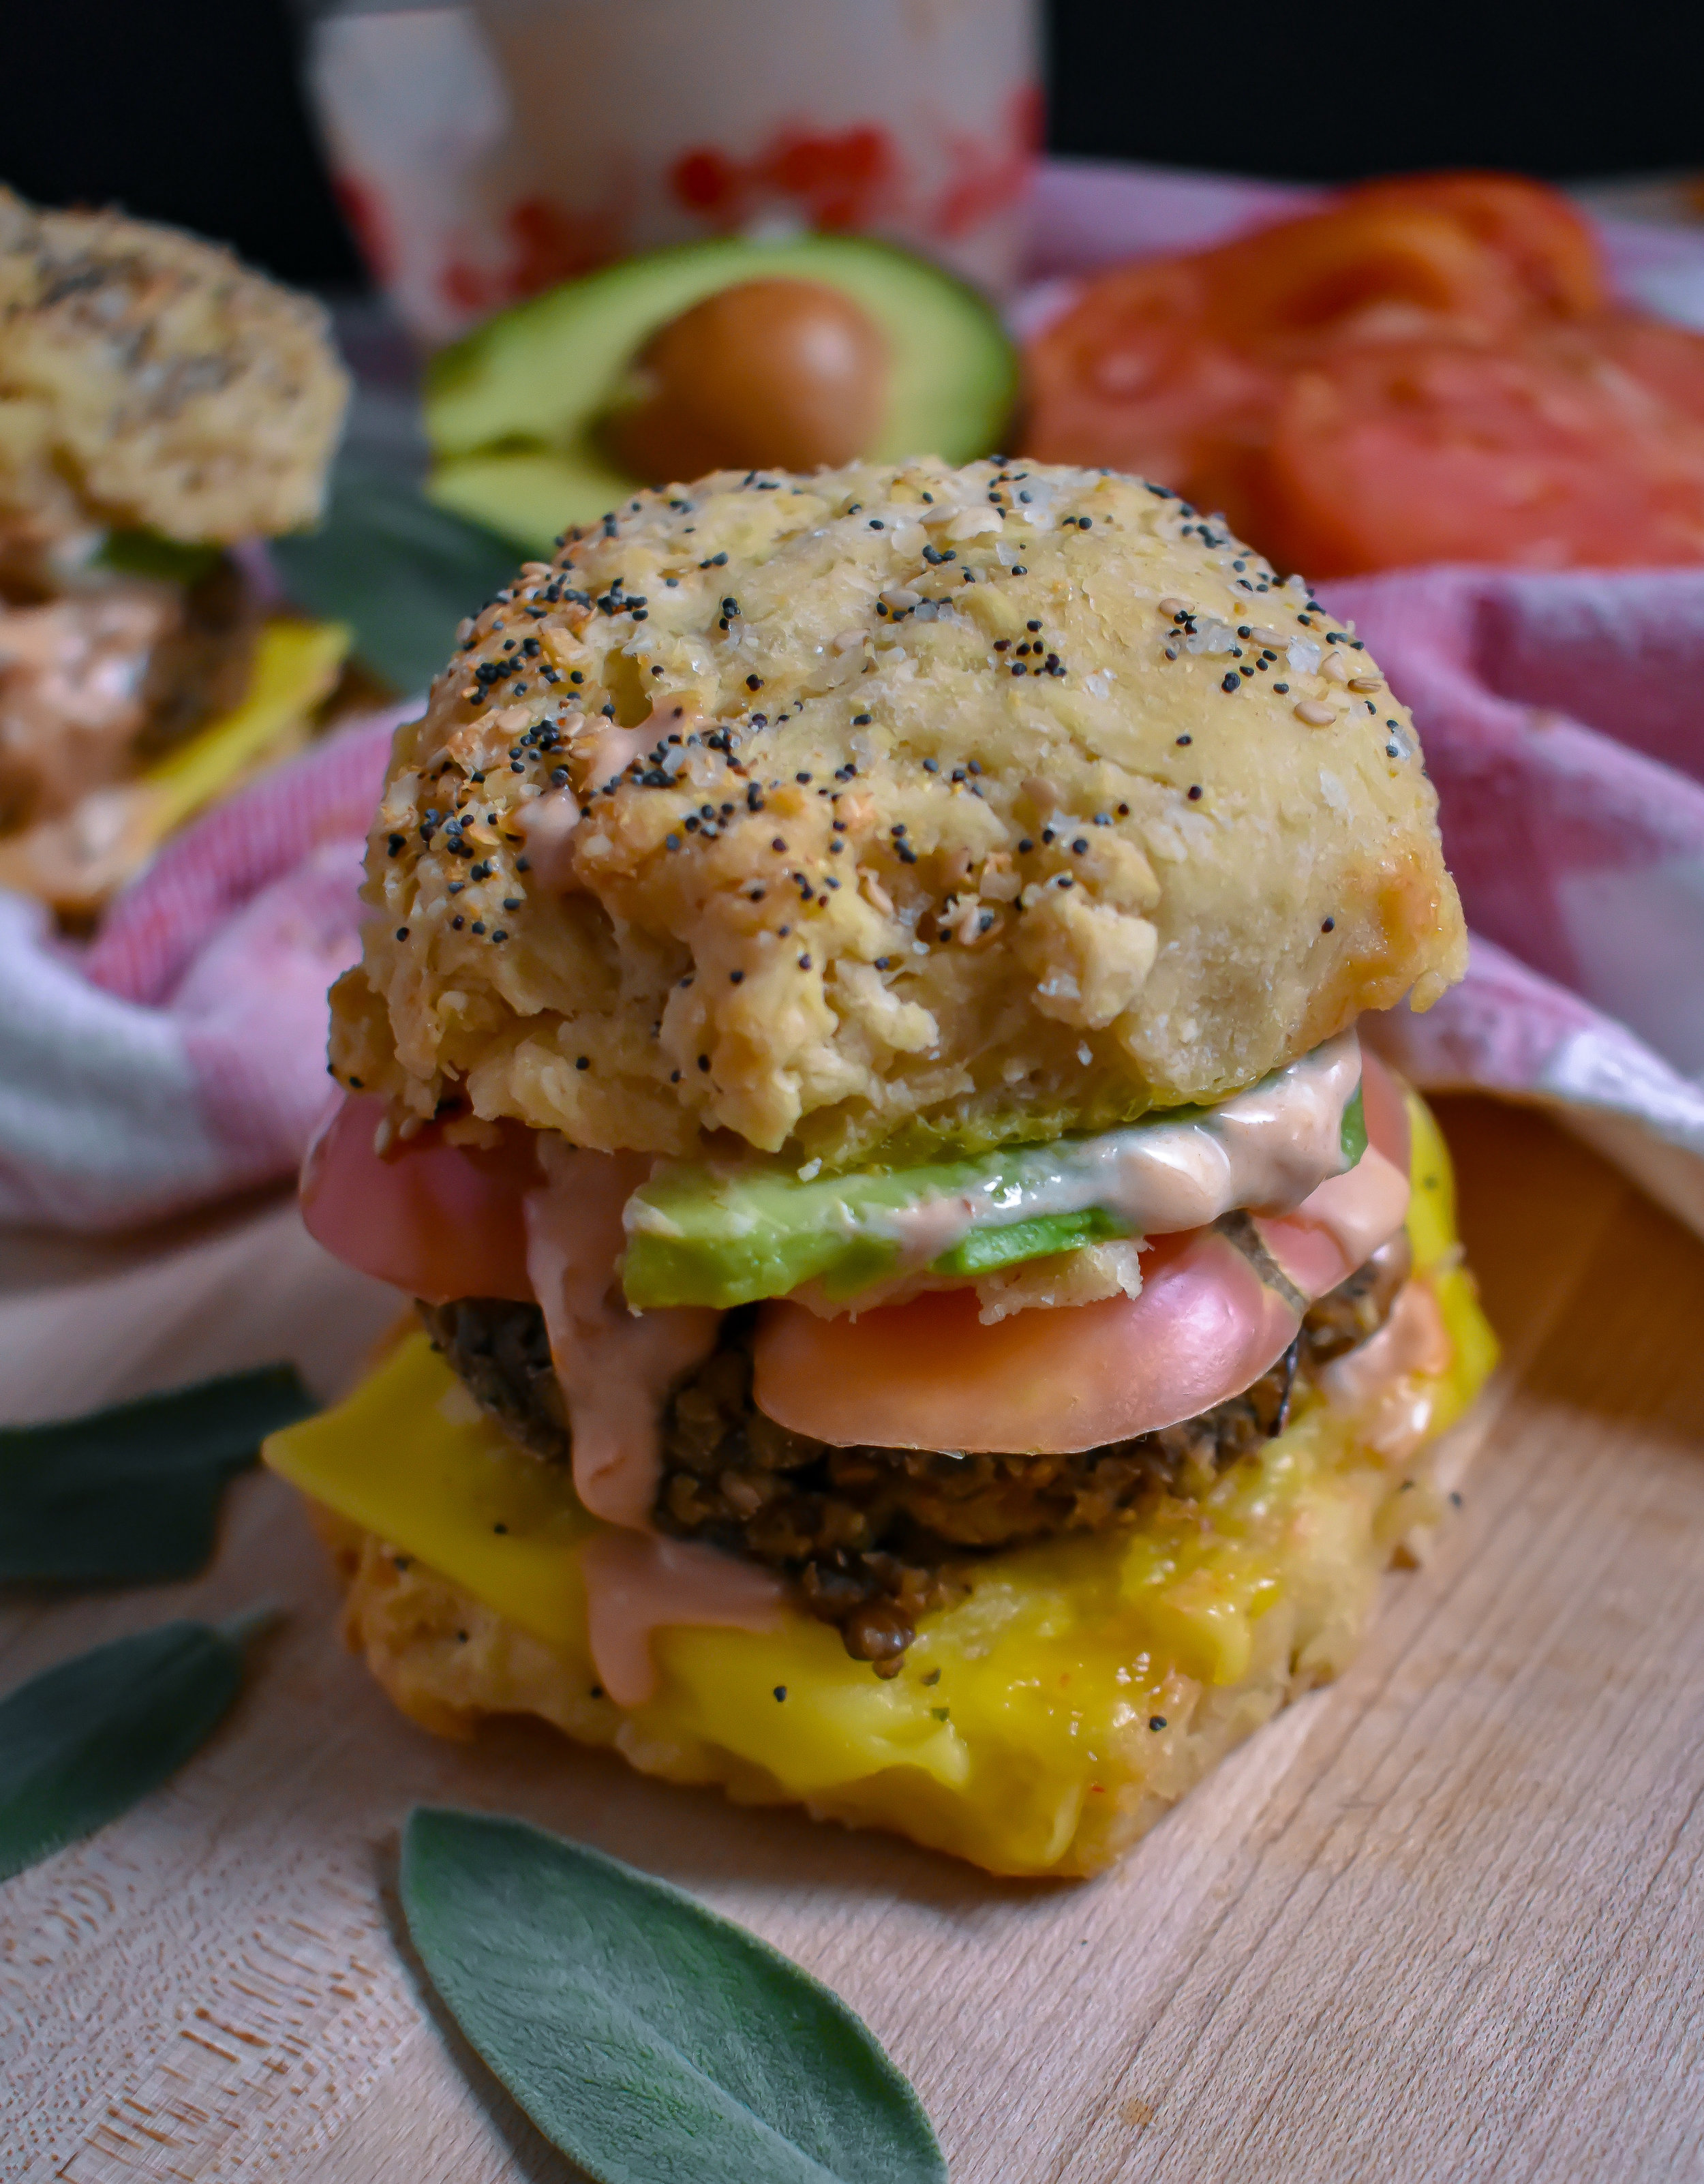 6. Finally, form your biscuit sandwich! Add a layer of vegan cheese to the bottom with a sausage patty, tomato slice, avocado slices, and a healthy layer of chipotle aioli. ENJOY!